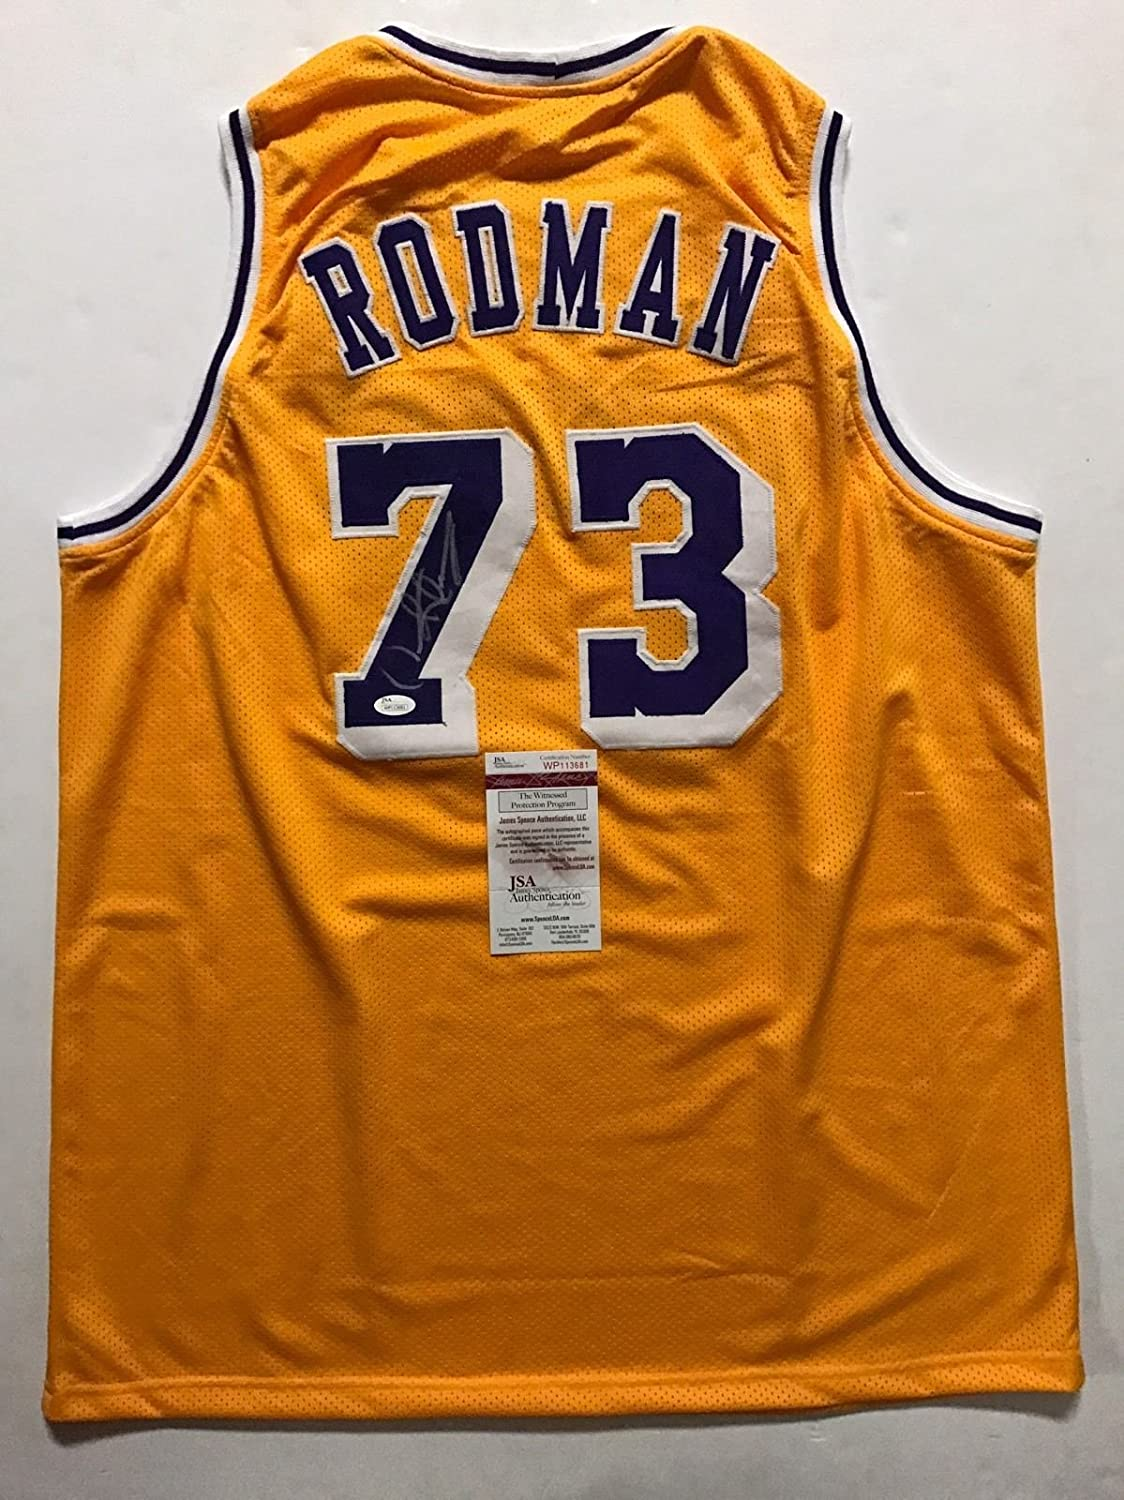 631a916d4a8d Autographed Signed Dennis Rodman Los Angeles LA Lakers Yellow Basketball  Jersey JSA COA at Amazon s Sports Collectibles Store